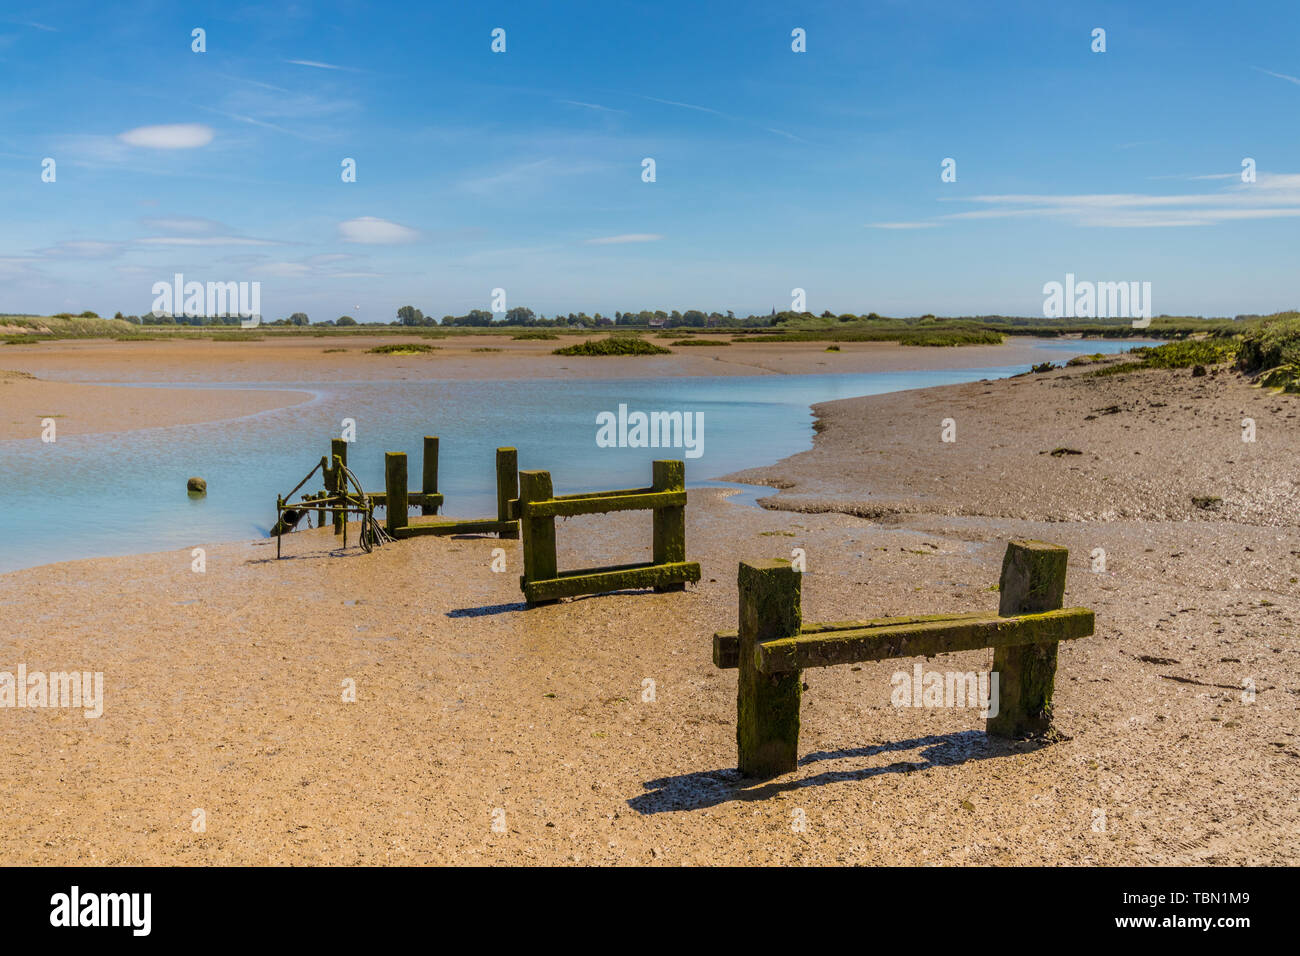 Remains of an old wooden pier at Pagham Harbour, West Sussex, UK - Stock Image